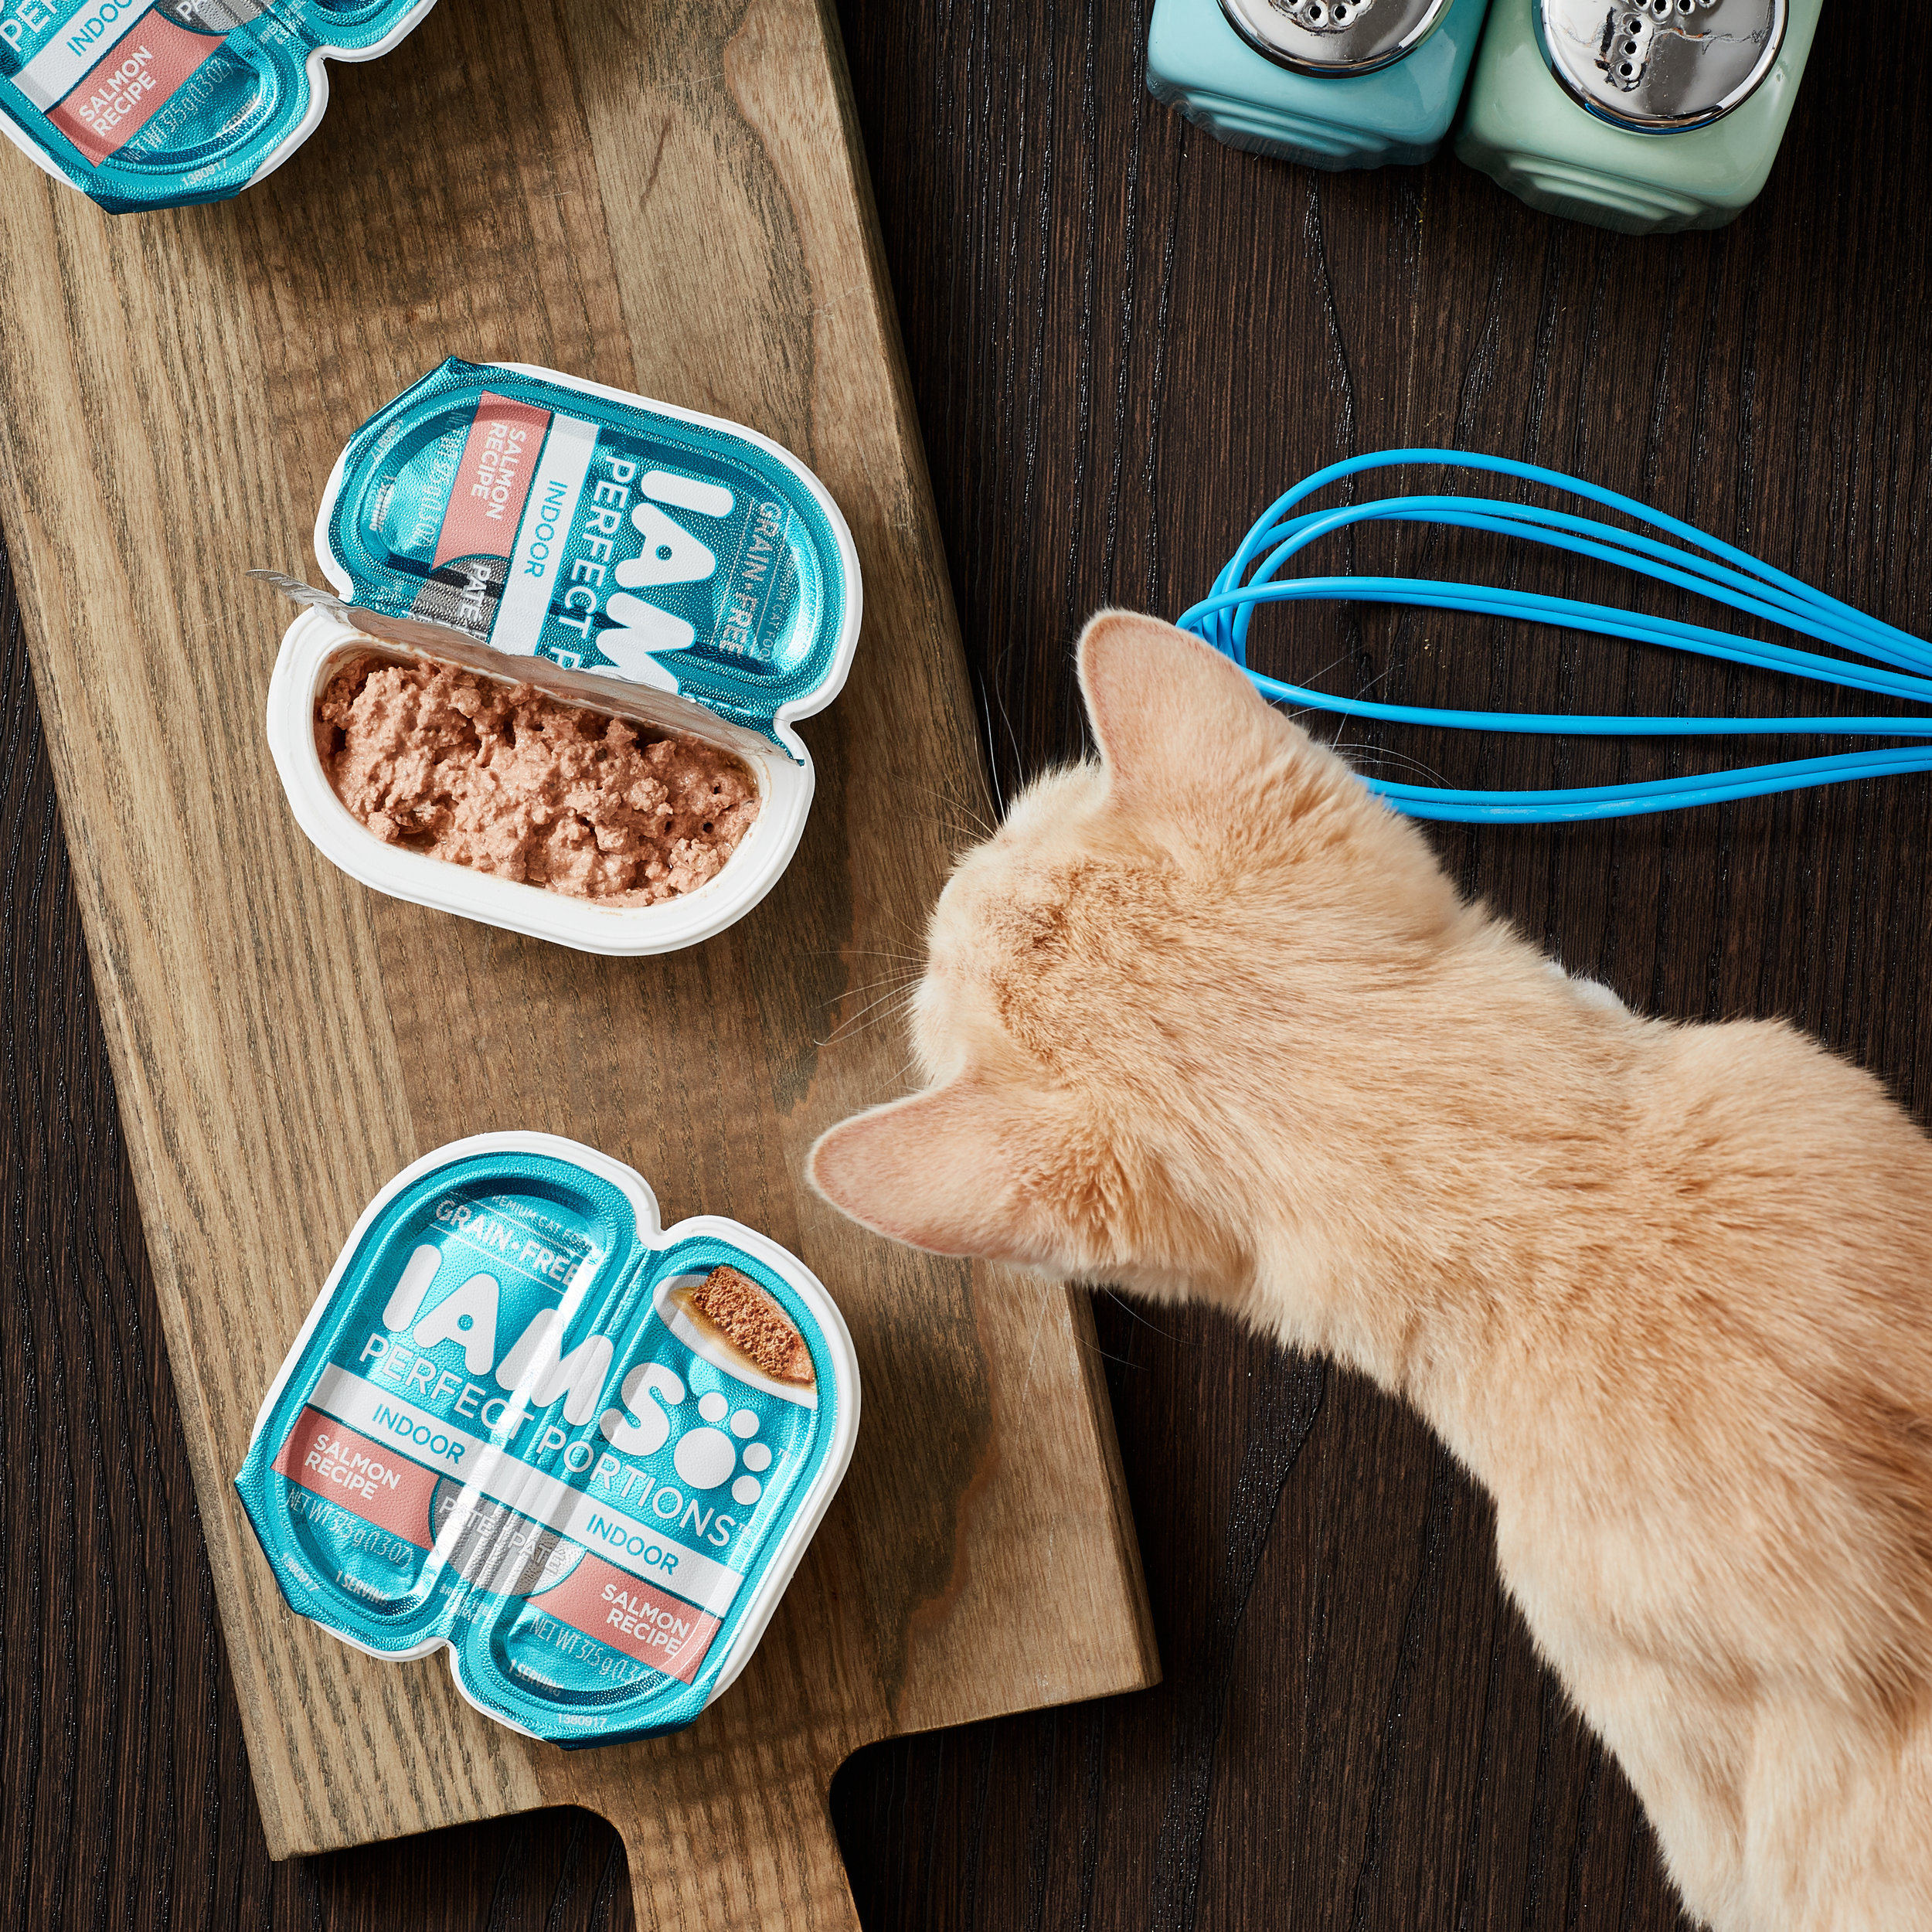 Lifestyle, Commercial, Studio product image taken of Iams Perfect Portions Wet Cat Food. Image by Javier Edwards